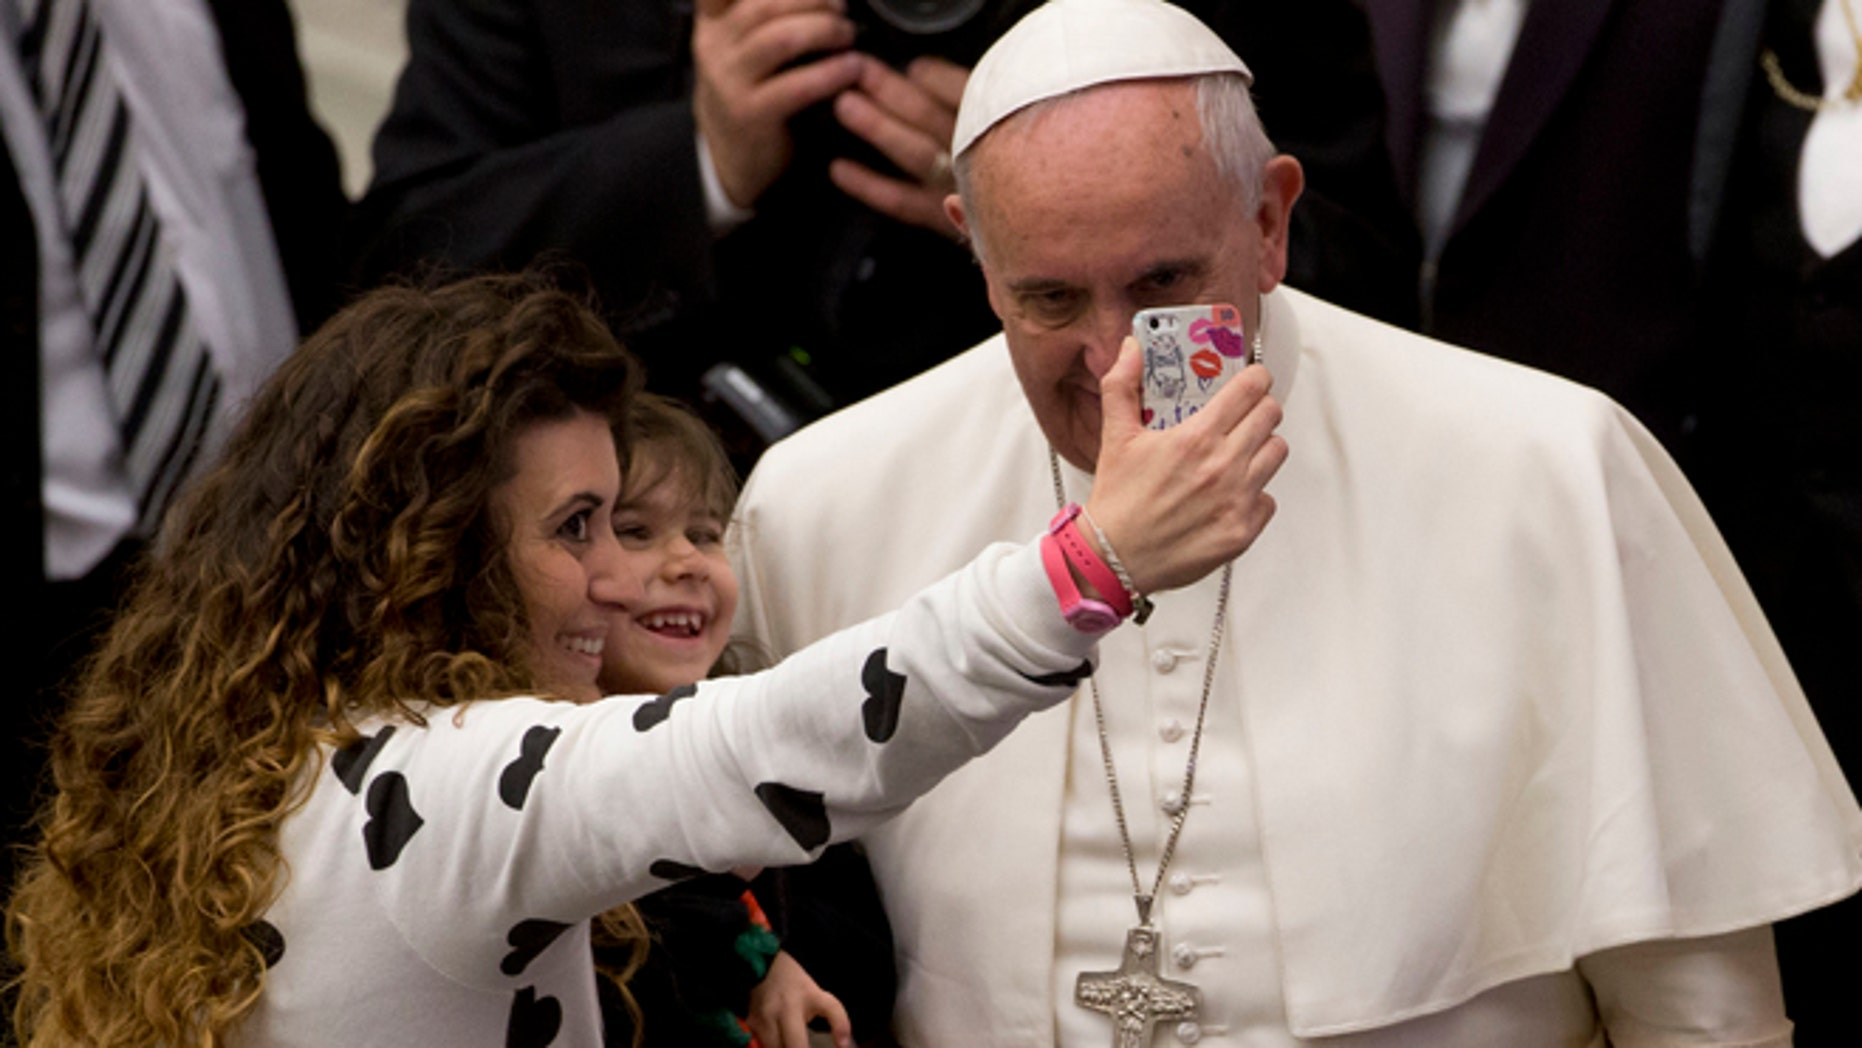 """A woman and a child take a selfie photo with Pope Francis, right, during his weekly general audience in the Paul VI hall at the Vatican, Wednesday, Jan. 21, 2015. Pope Francis is praising big families after saying Catholics don't have to breed """"like rabbits."""" He says big families are a gift and don't cause poverty in the developing world, and that the real cause of poverty is an unjust economic system that idolizes money over people. (AP Photo/Andrew Medichini)"""